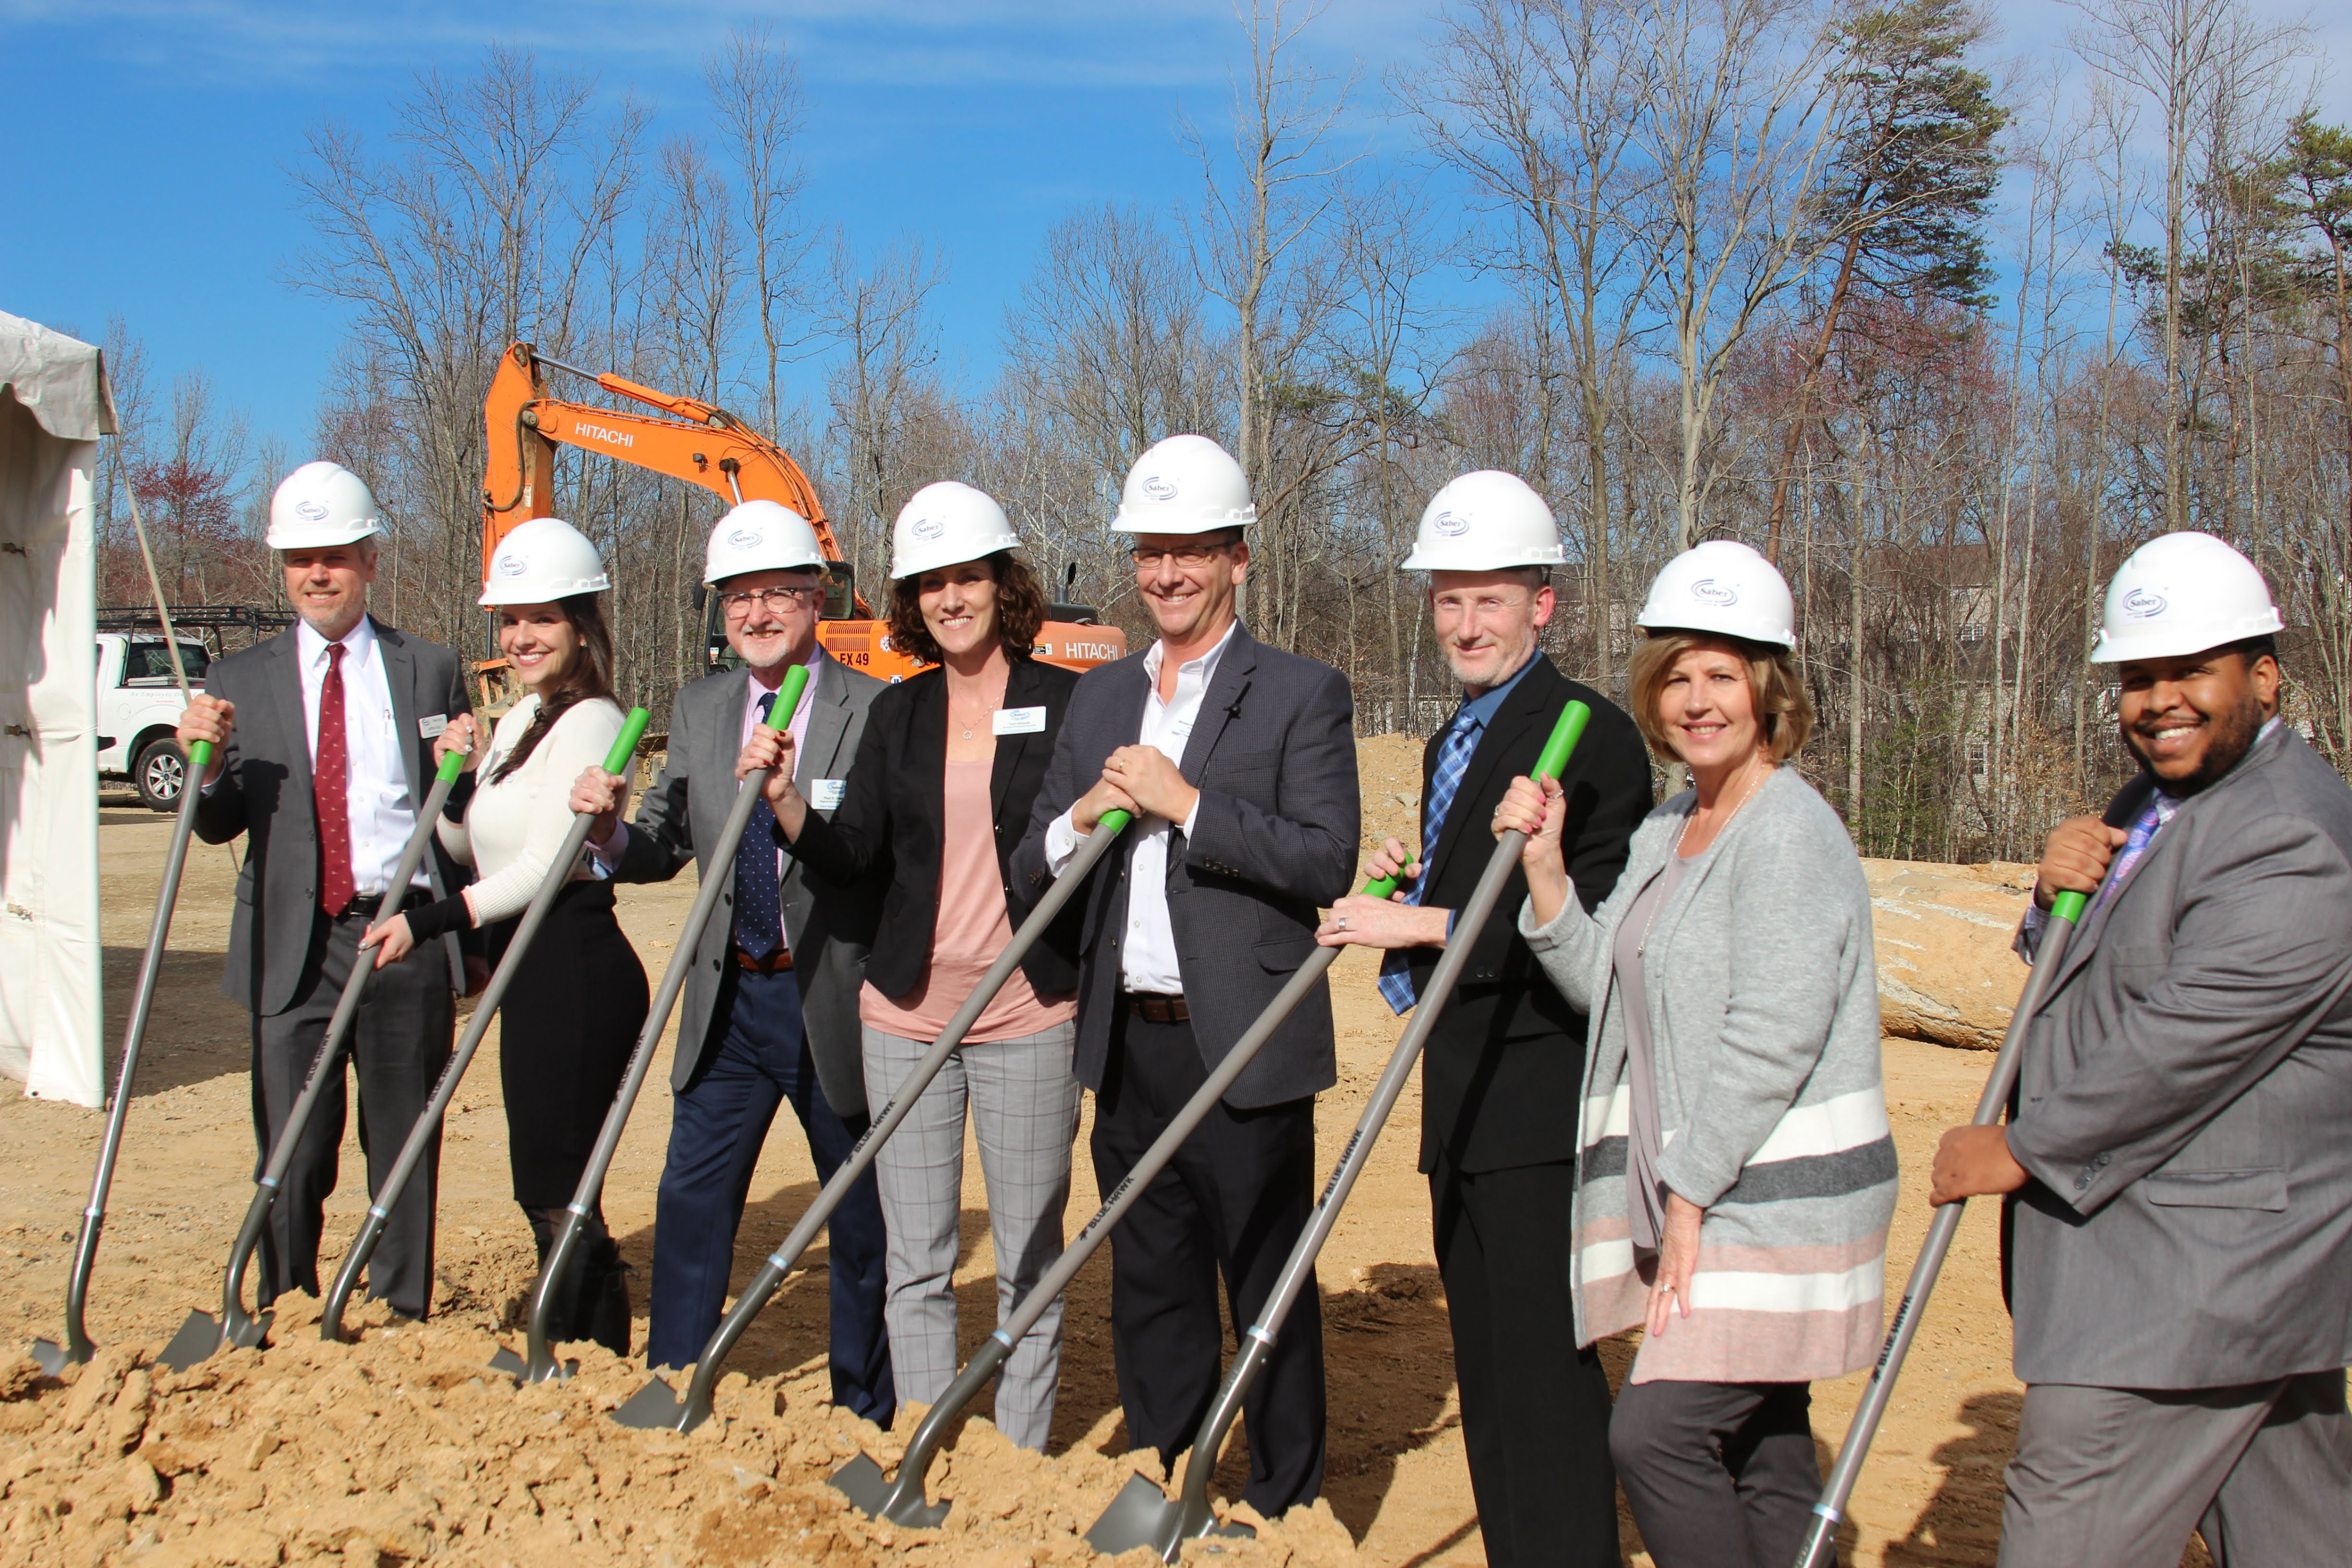 Executives from Saber Healthcare Group joined local officials to break ground on Saber's new healthcare facility Berea Health & Rehabilitation Center in Fredericksburg.